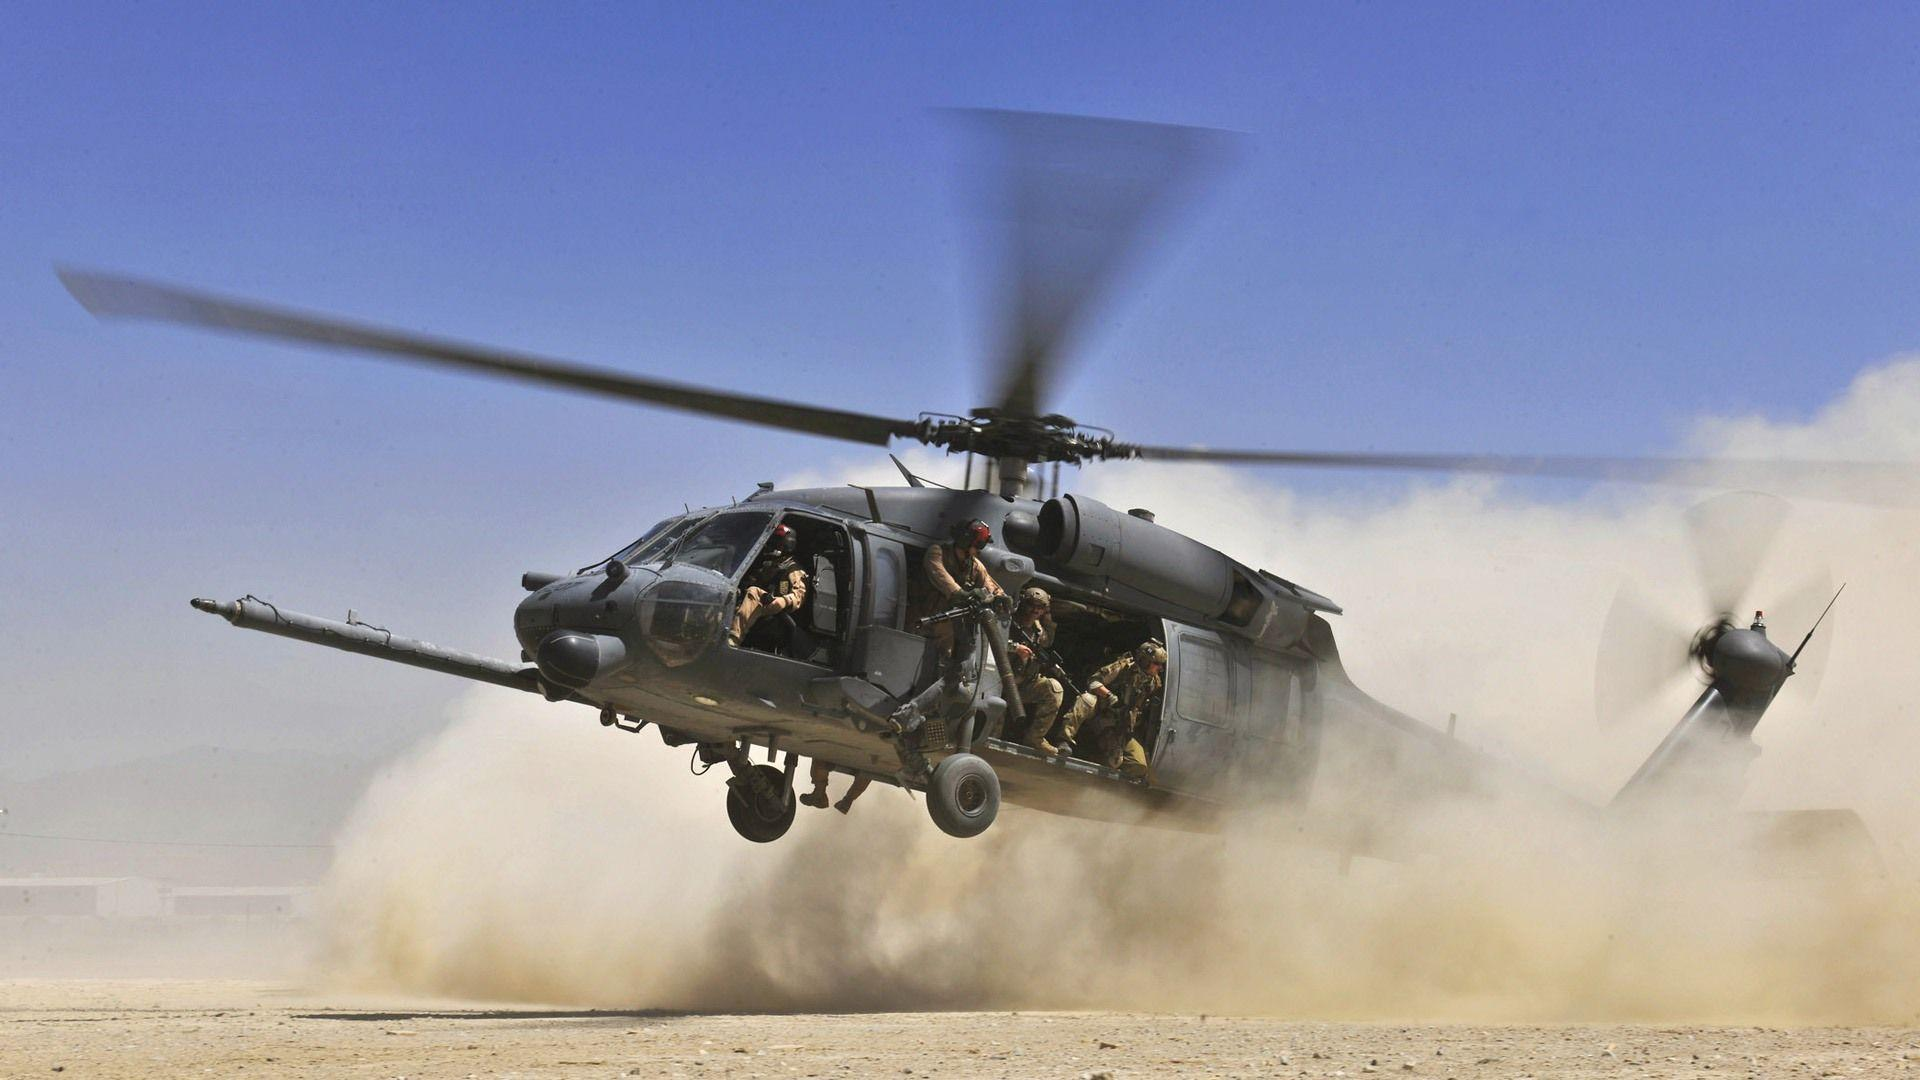 Military helicopters HD wallpapers